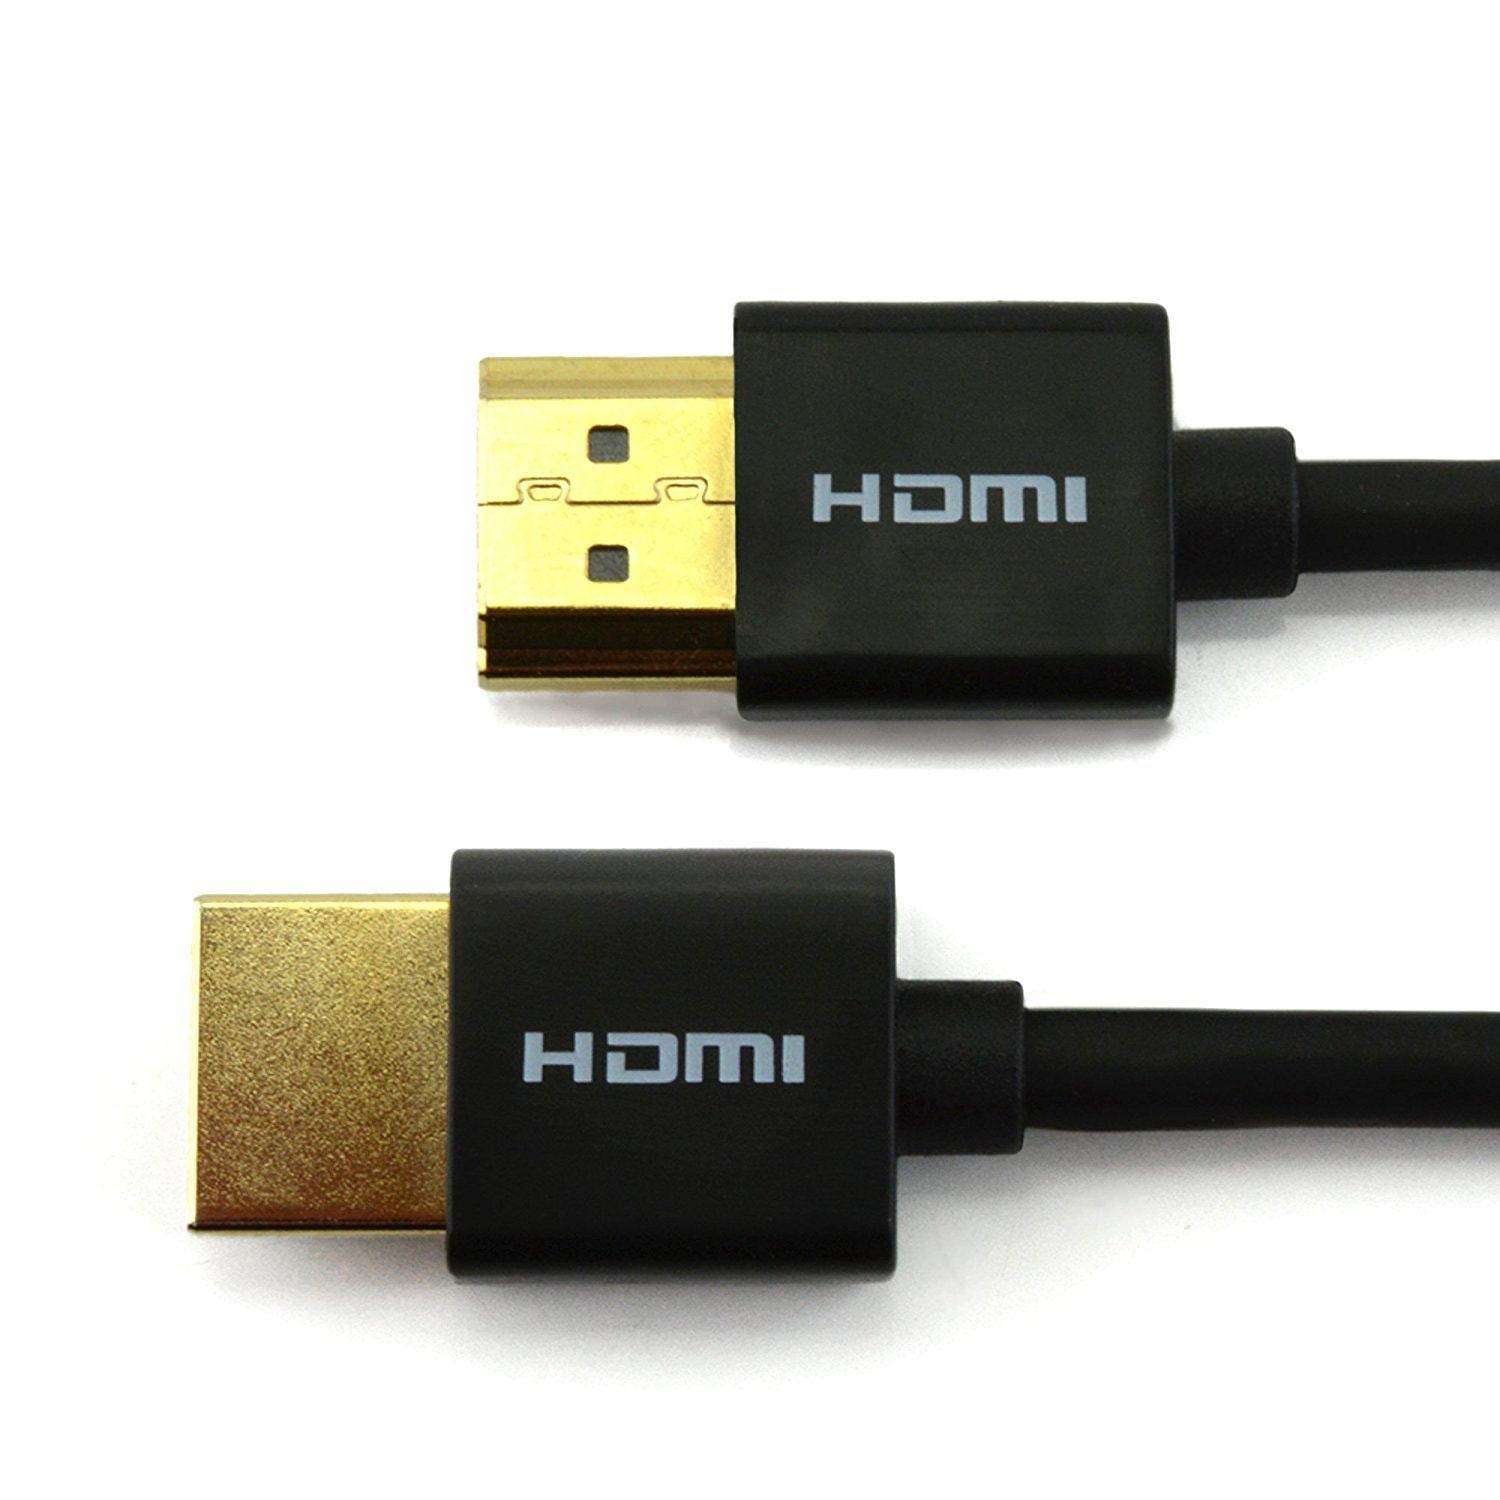 Cable Fin HDMI 2.0 connectique Or - 1.5m - 0